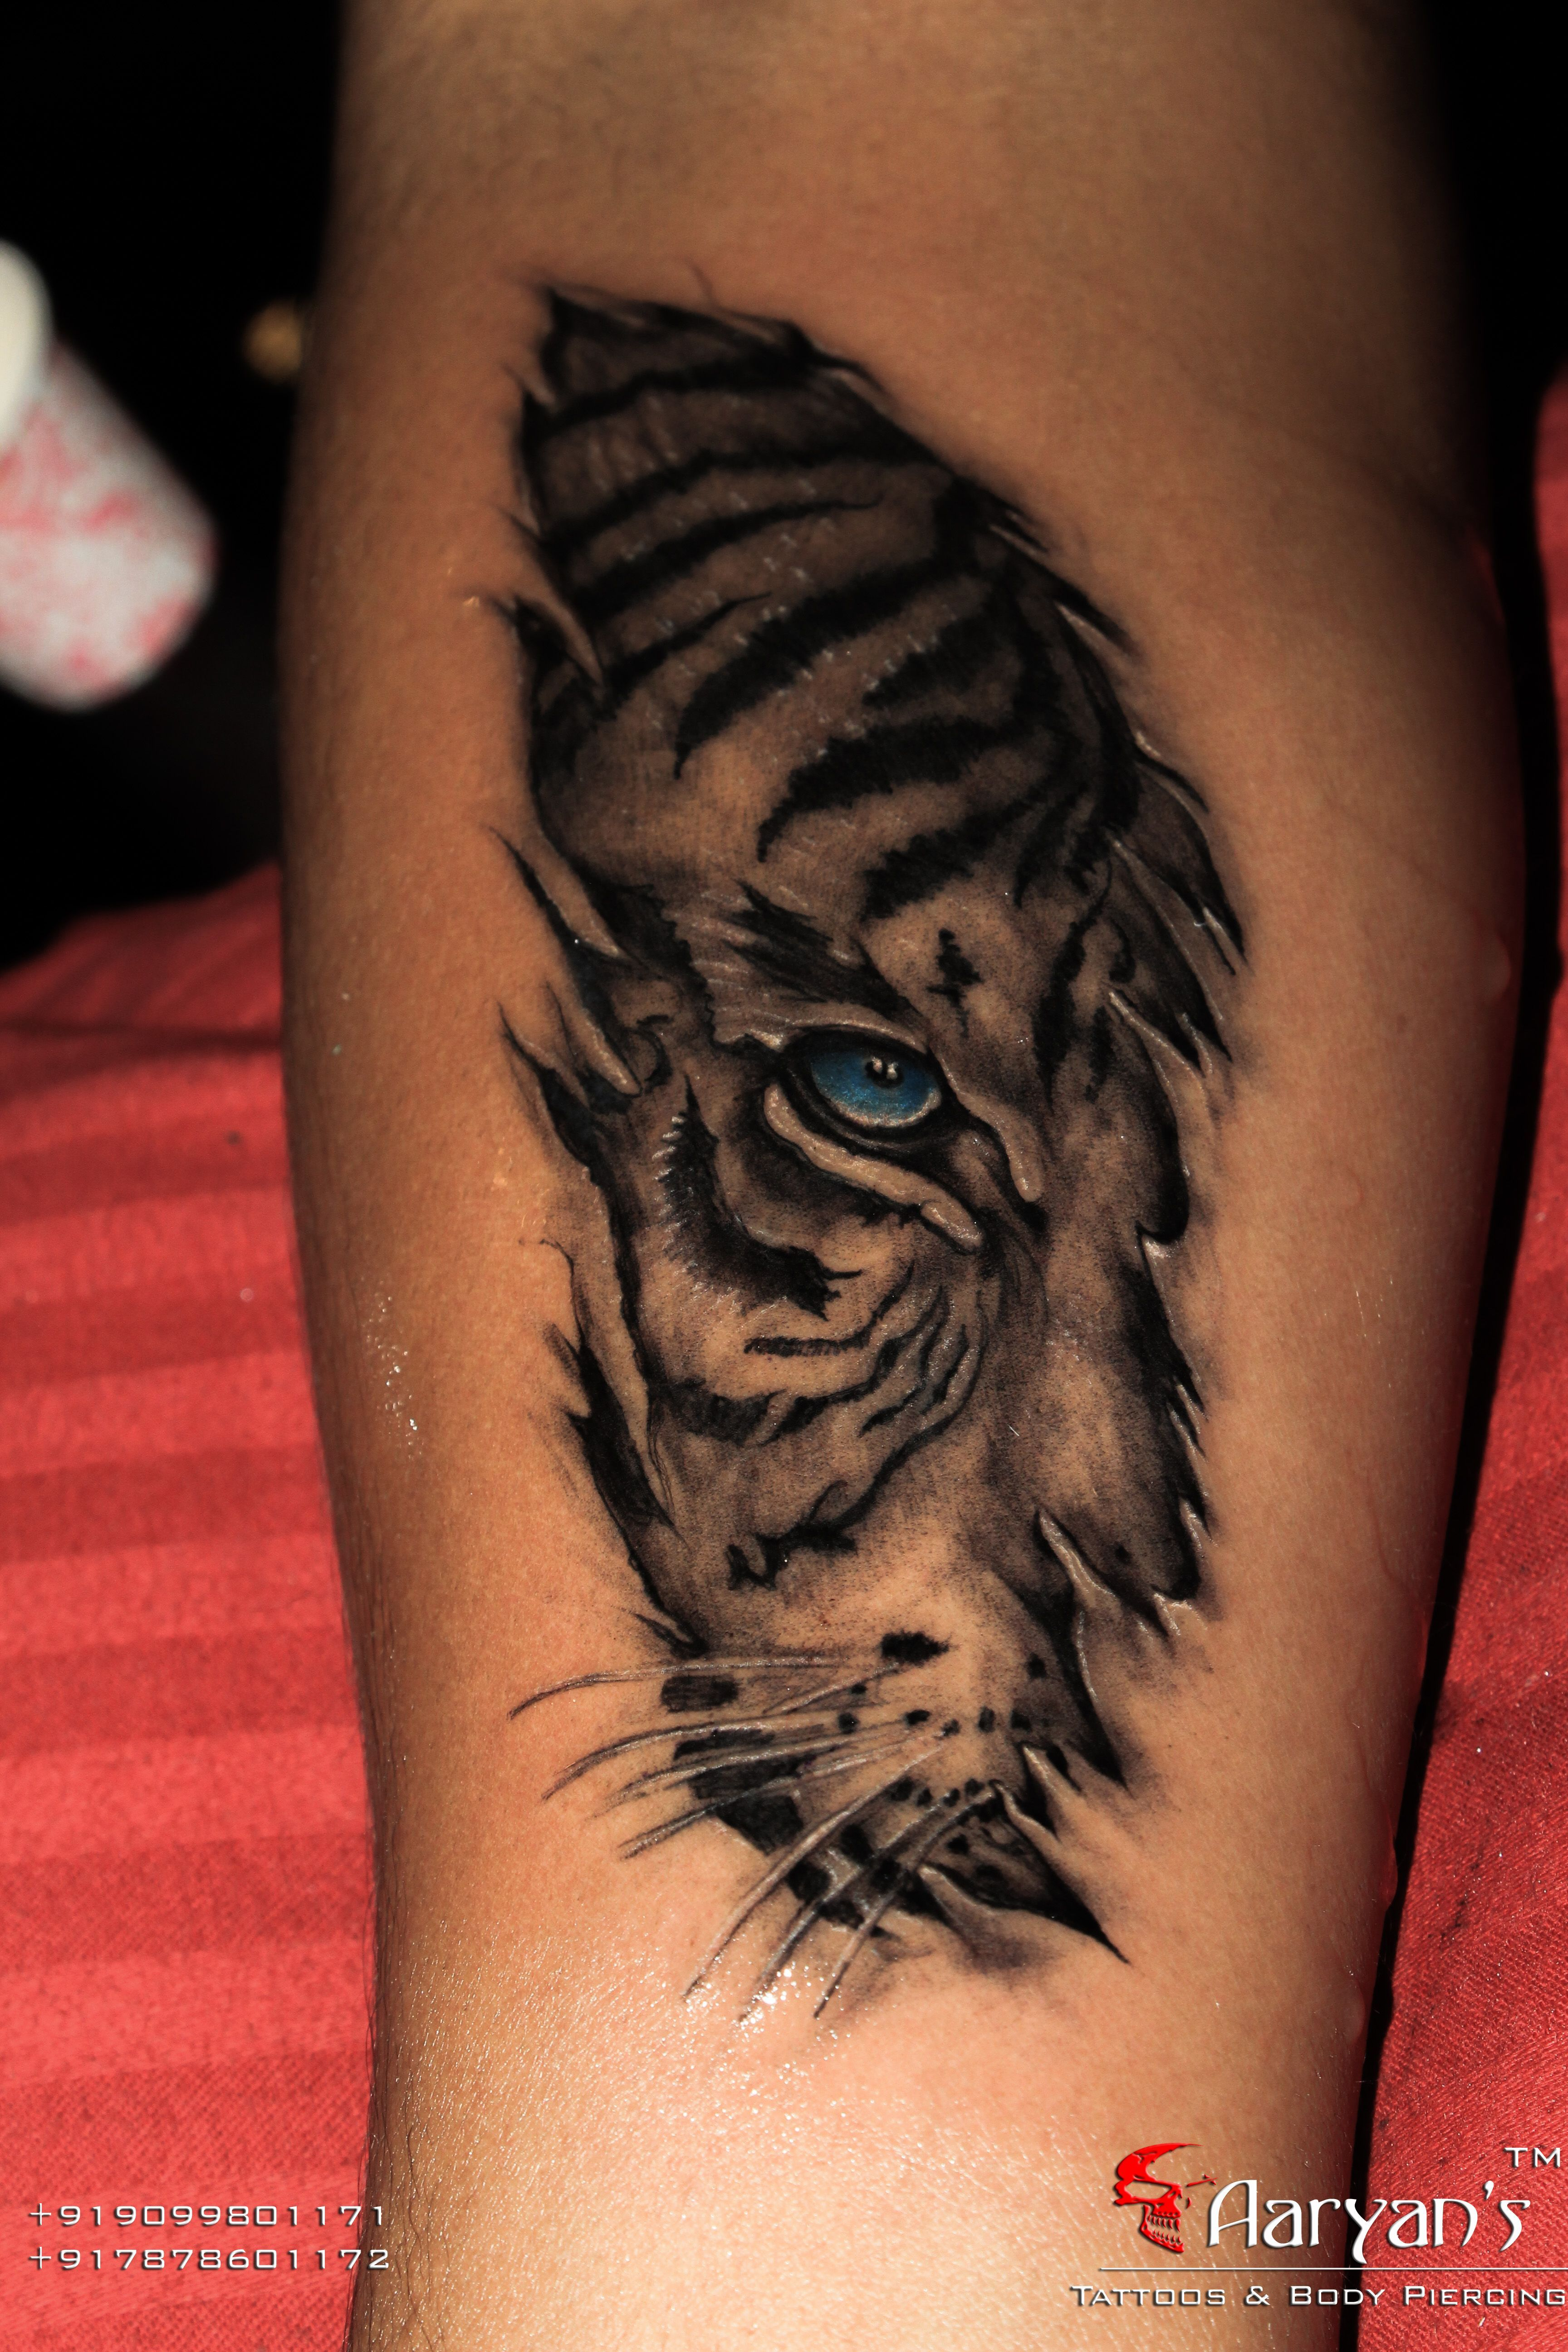 How to take care of your new tattoo tiger tattoo leg